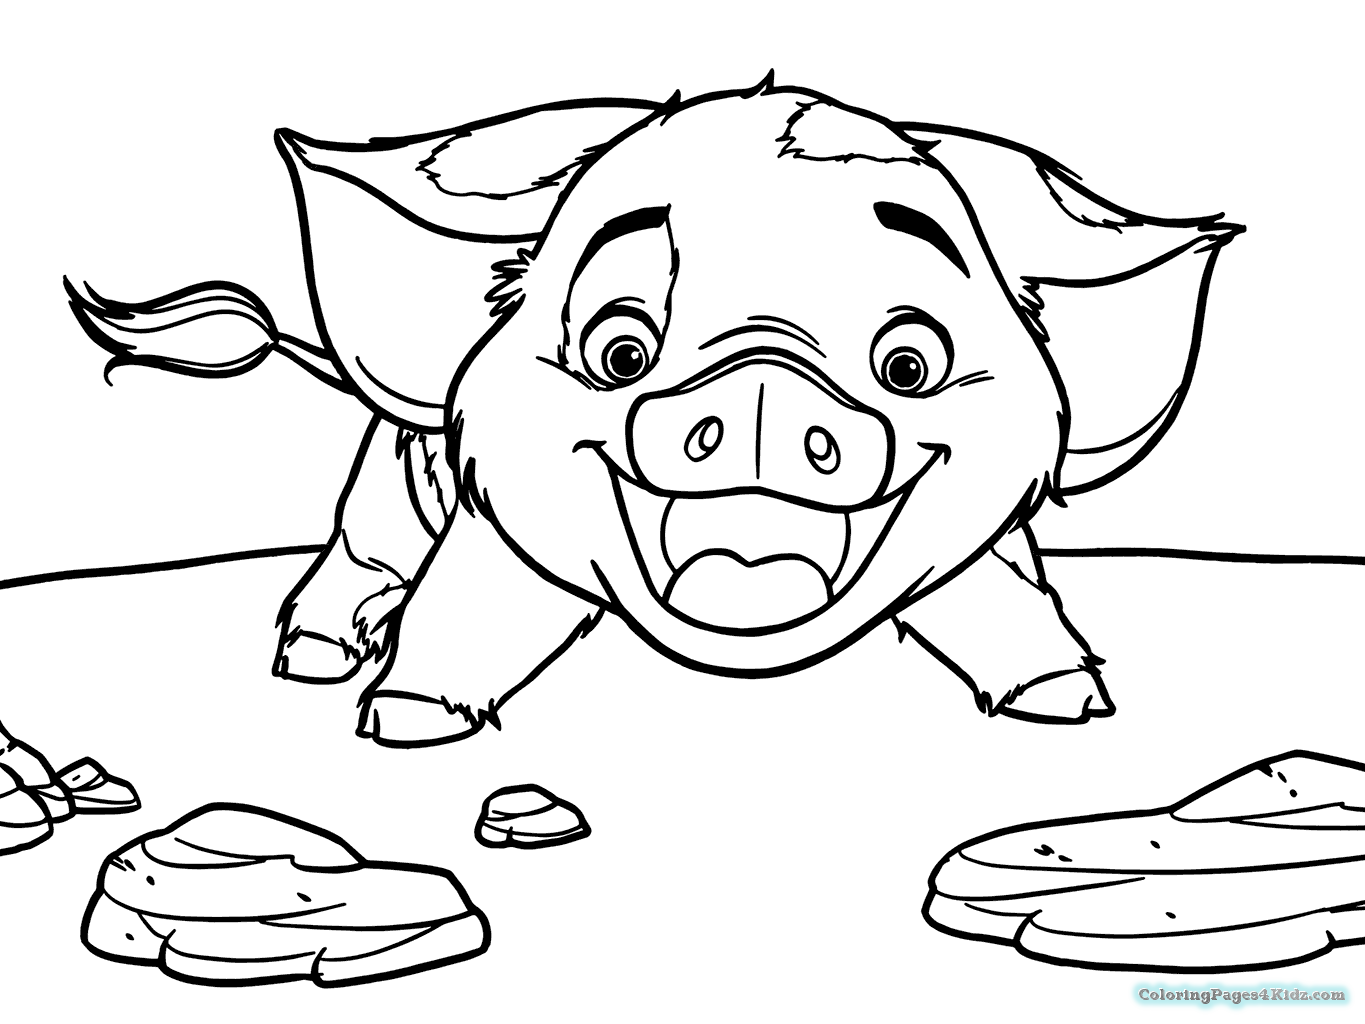 cute moana coloring pages moana free coloring printable coloring pages for kids coloring moana cute pages